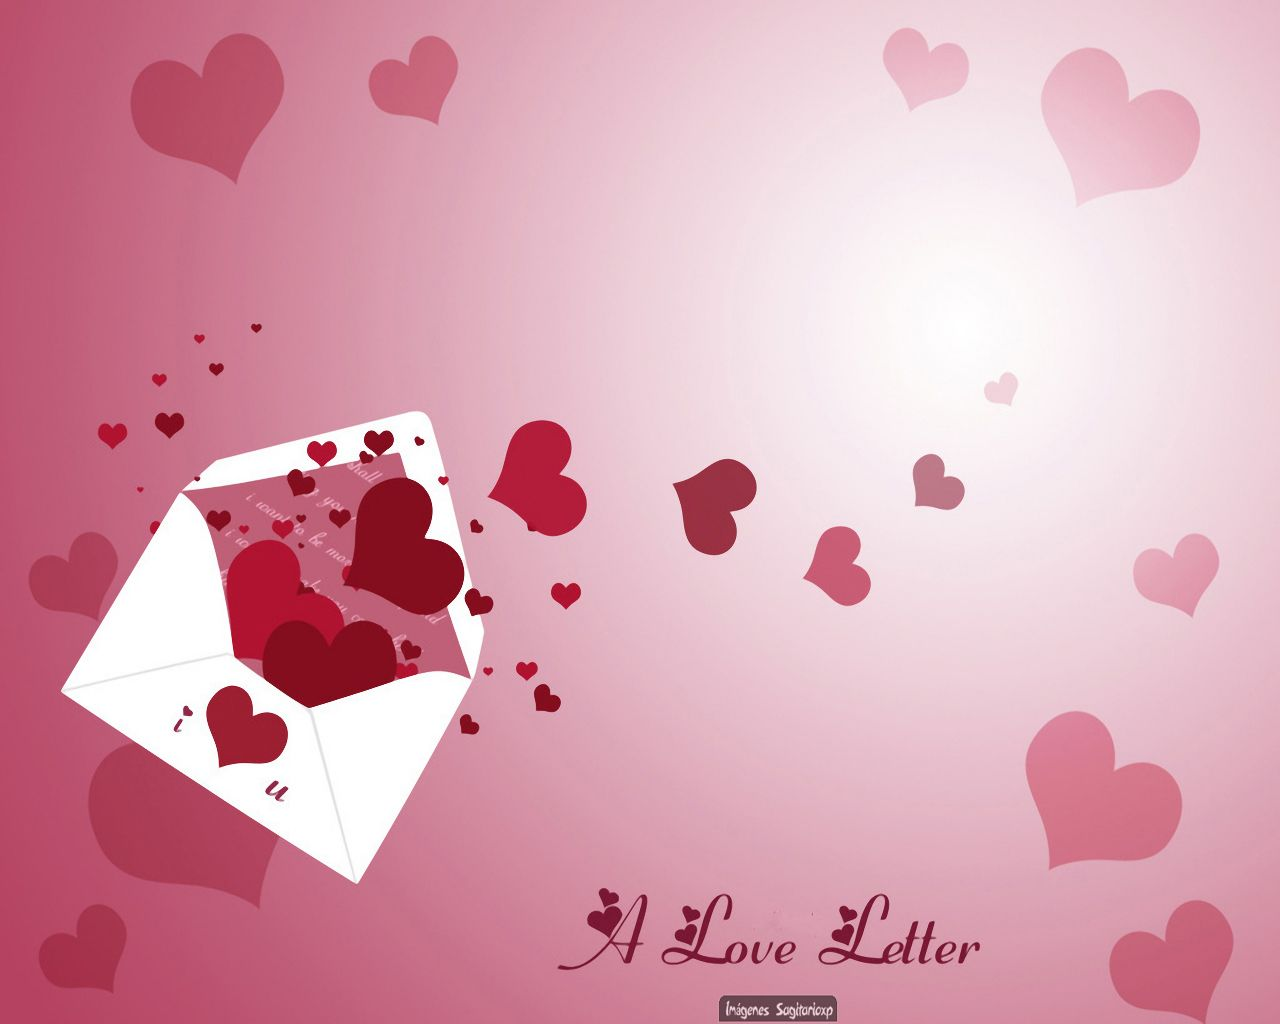 Ordinaire A Love Letter Wallpapers HD Wallpapers